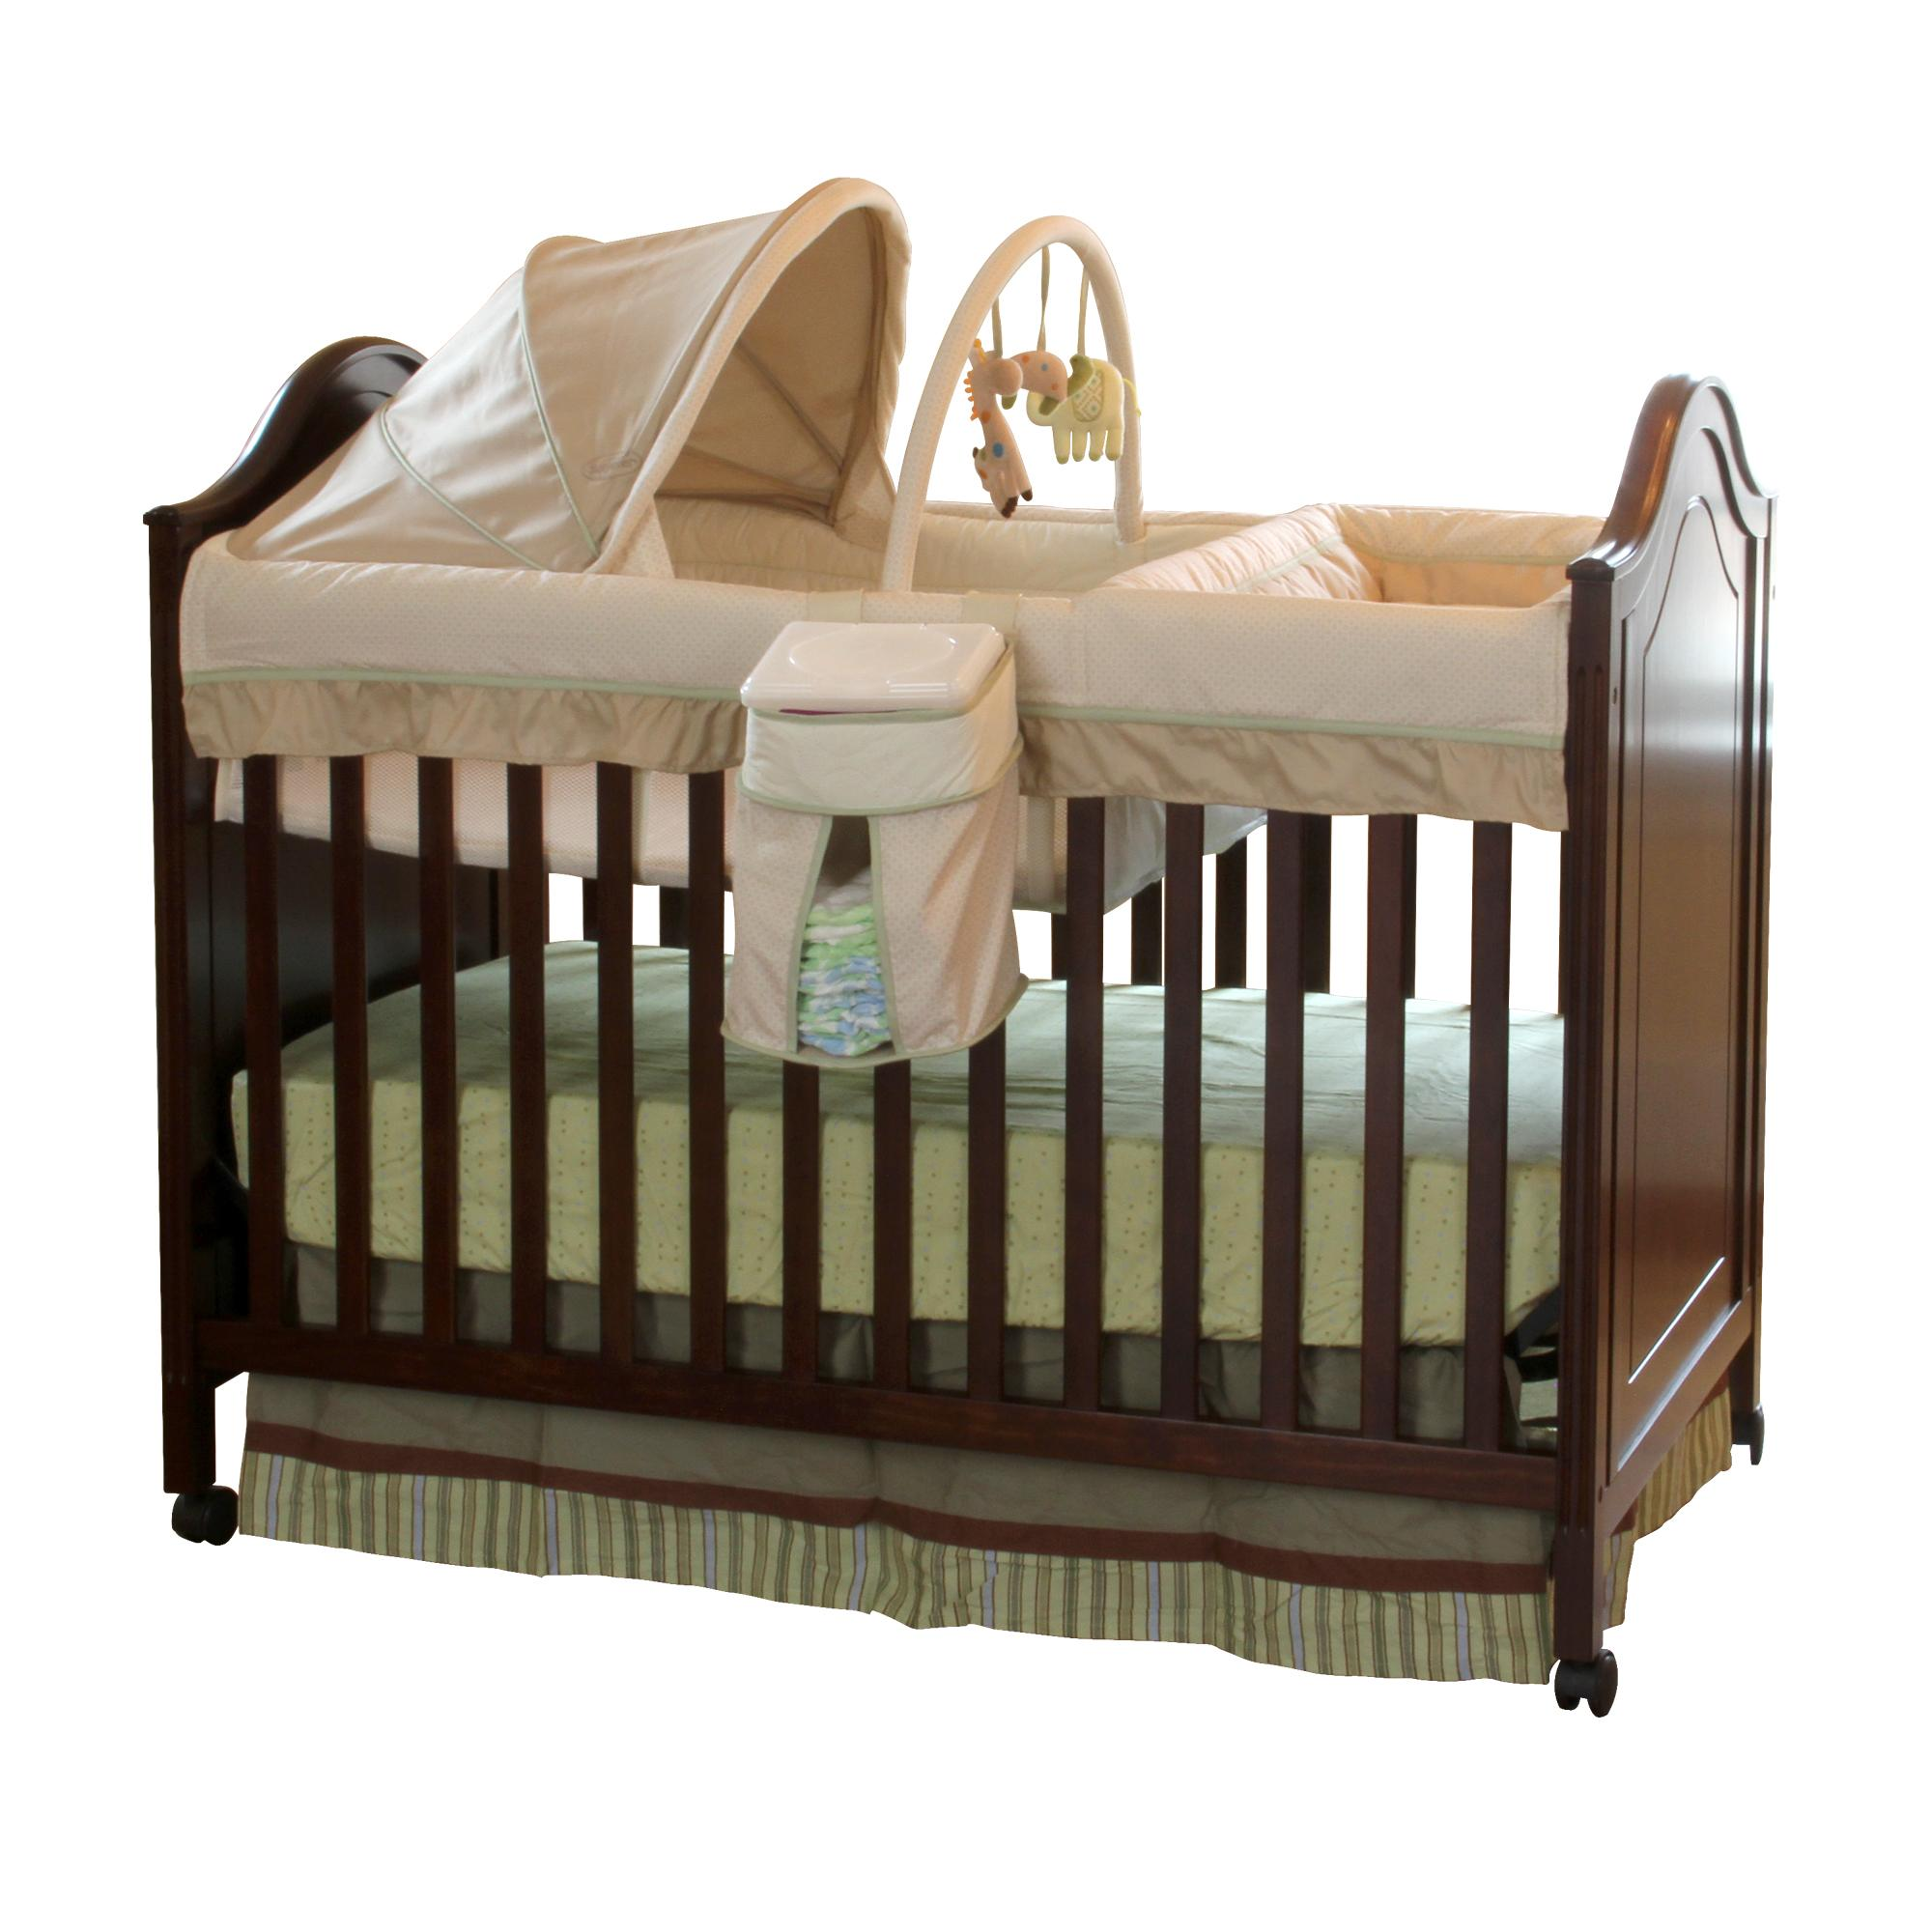 cribs size n sears changing us cherry kmart attached ofa full baby convertible fizzy conversion combo of f kit sets children babies changer awesome r comf table bassinets nursery crib bentley s delta walmart with